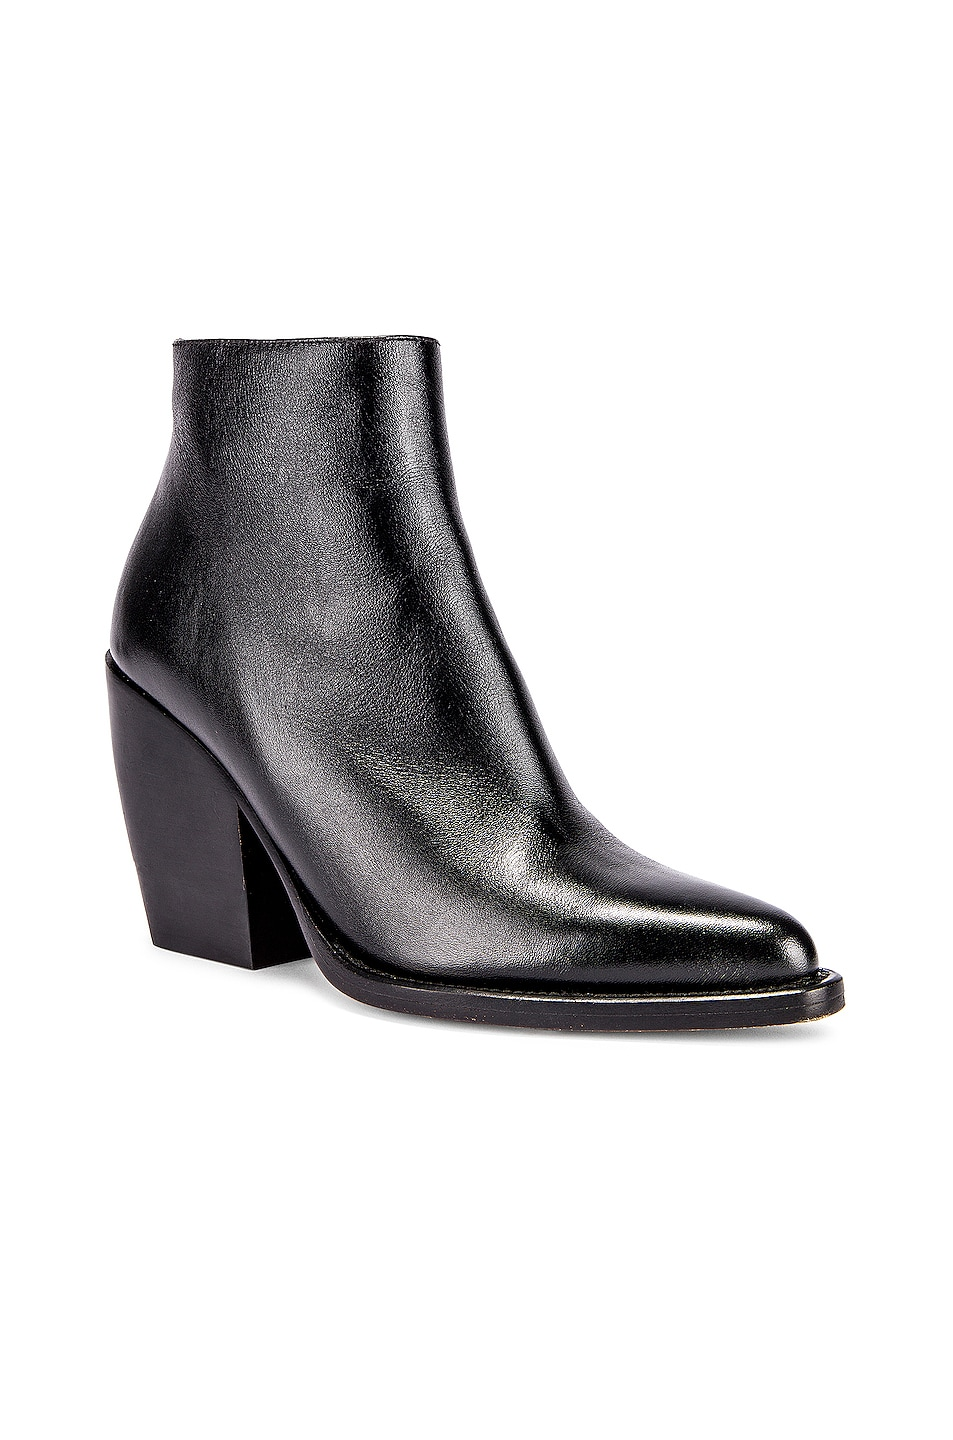 Image 2 of Chloe Rylee Ankle Boots in Black